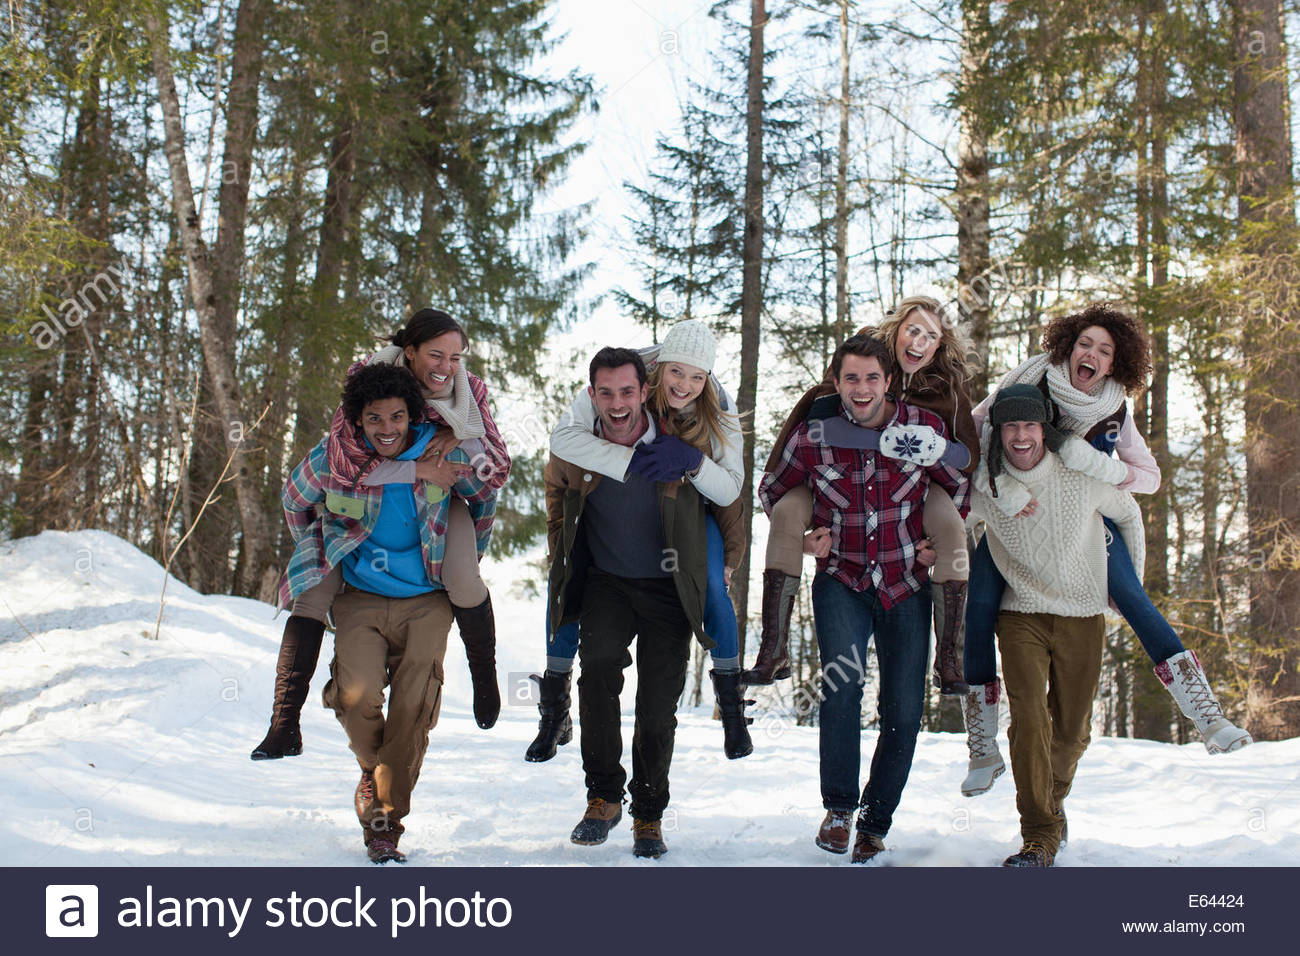 Enthusiastic couples piggybacking in snowy woods - Stock Image